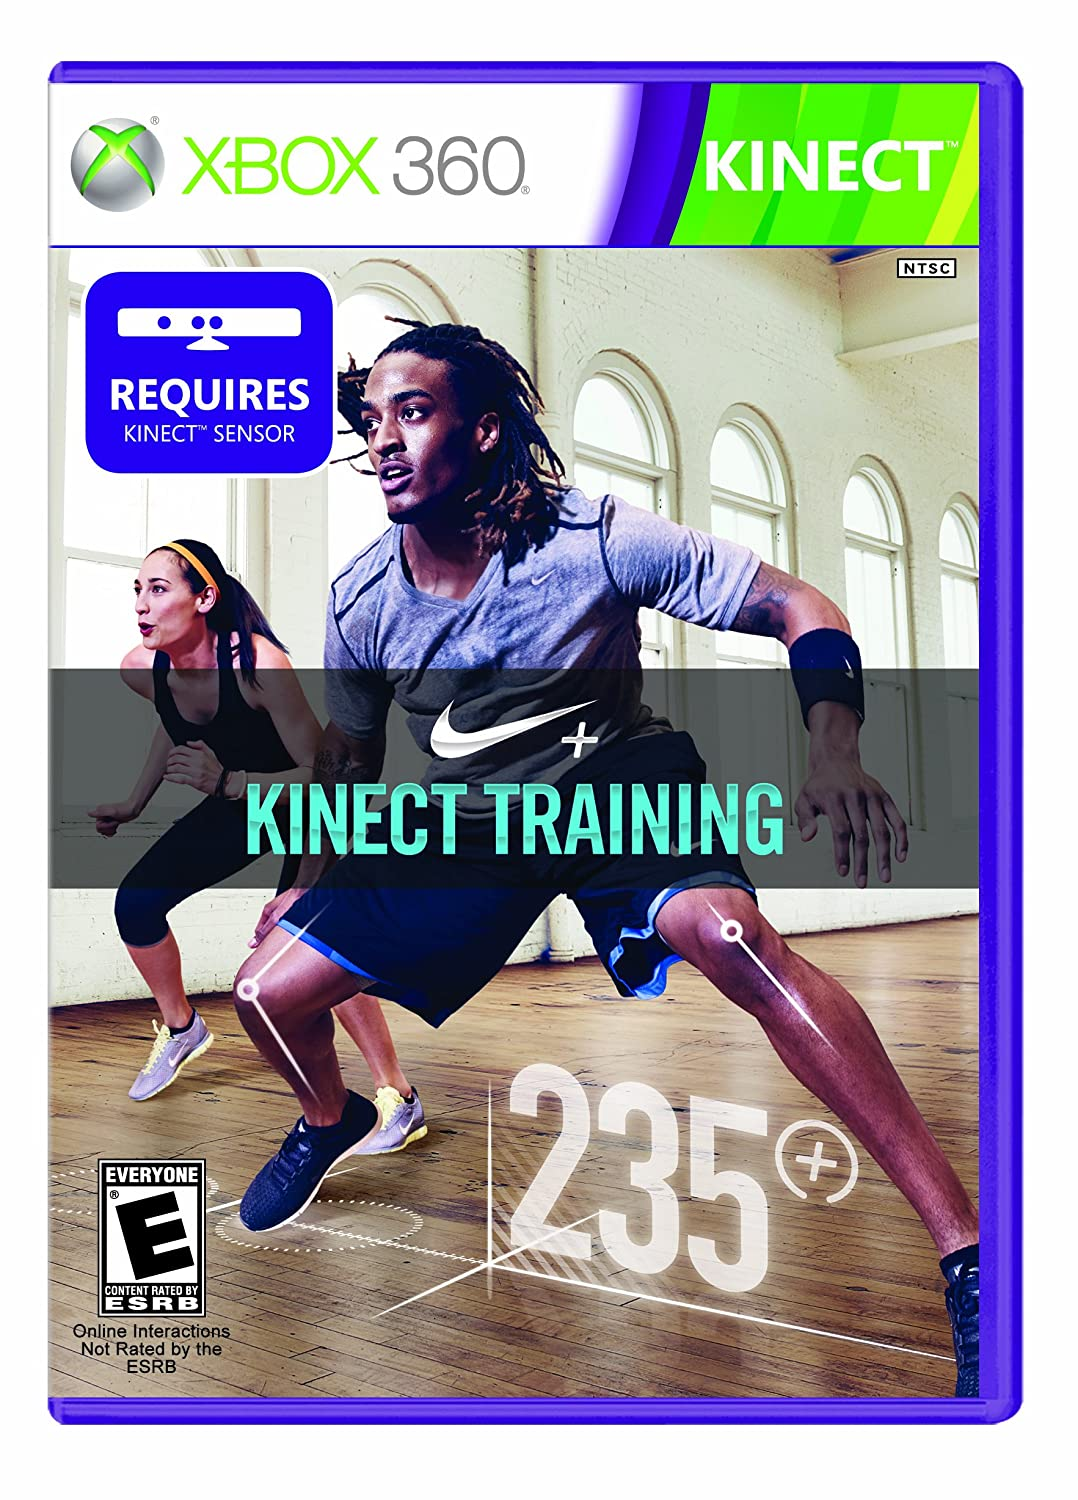 Nike+ Kinect Training at Amazon.com